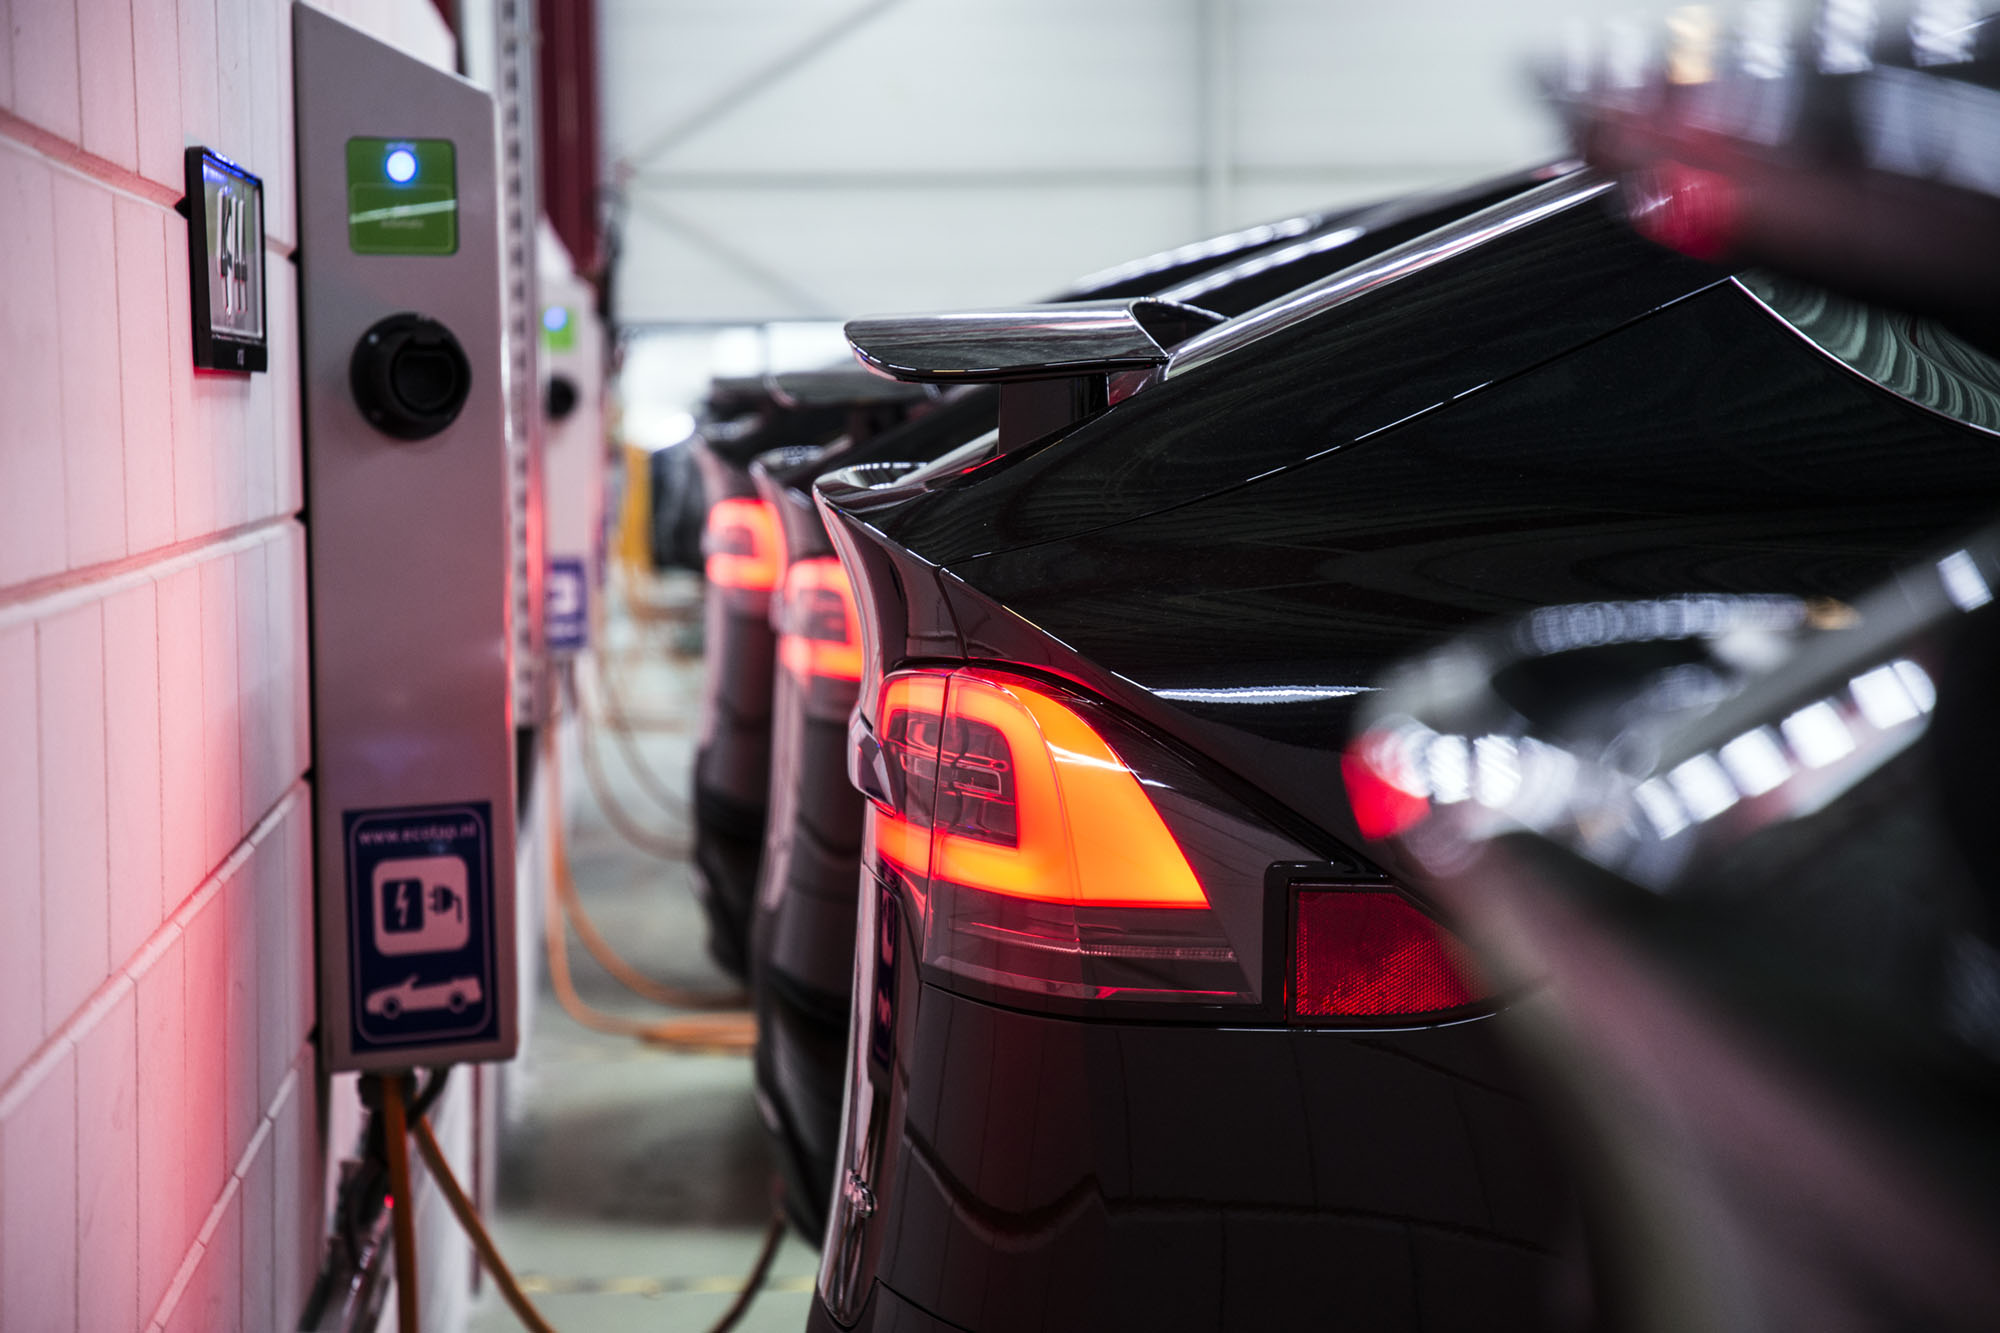 Tesla, other carmakers' EV output could 'vastly outweigh consumer demand' by 2030: study